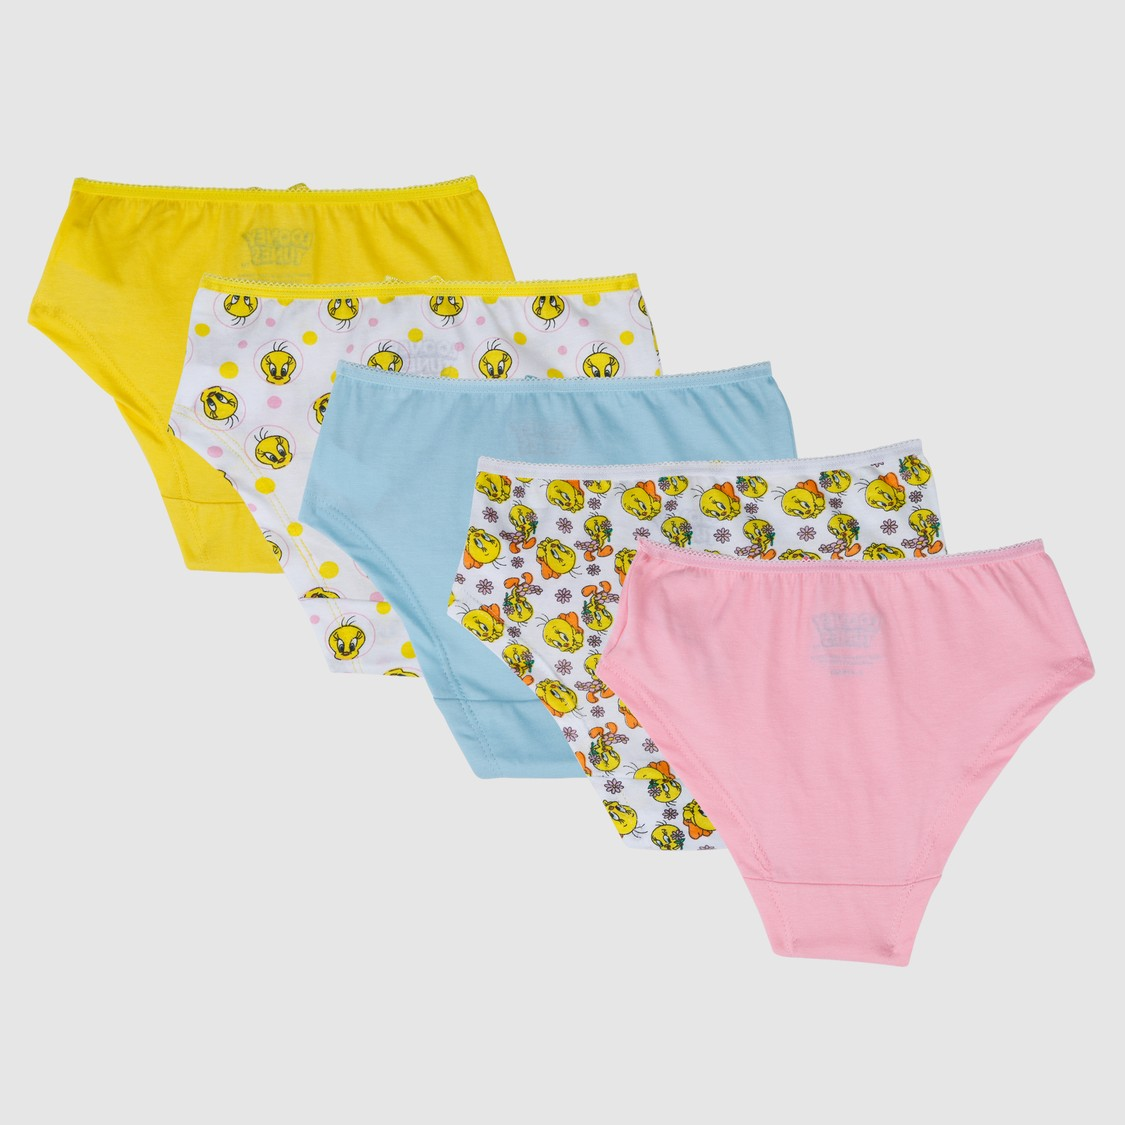 Tweety Printed Briefs with Elasticised Waistband - Set of 5